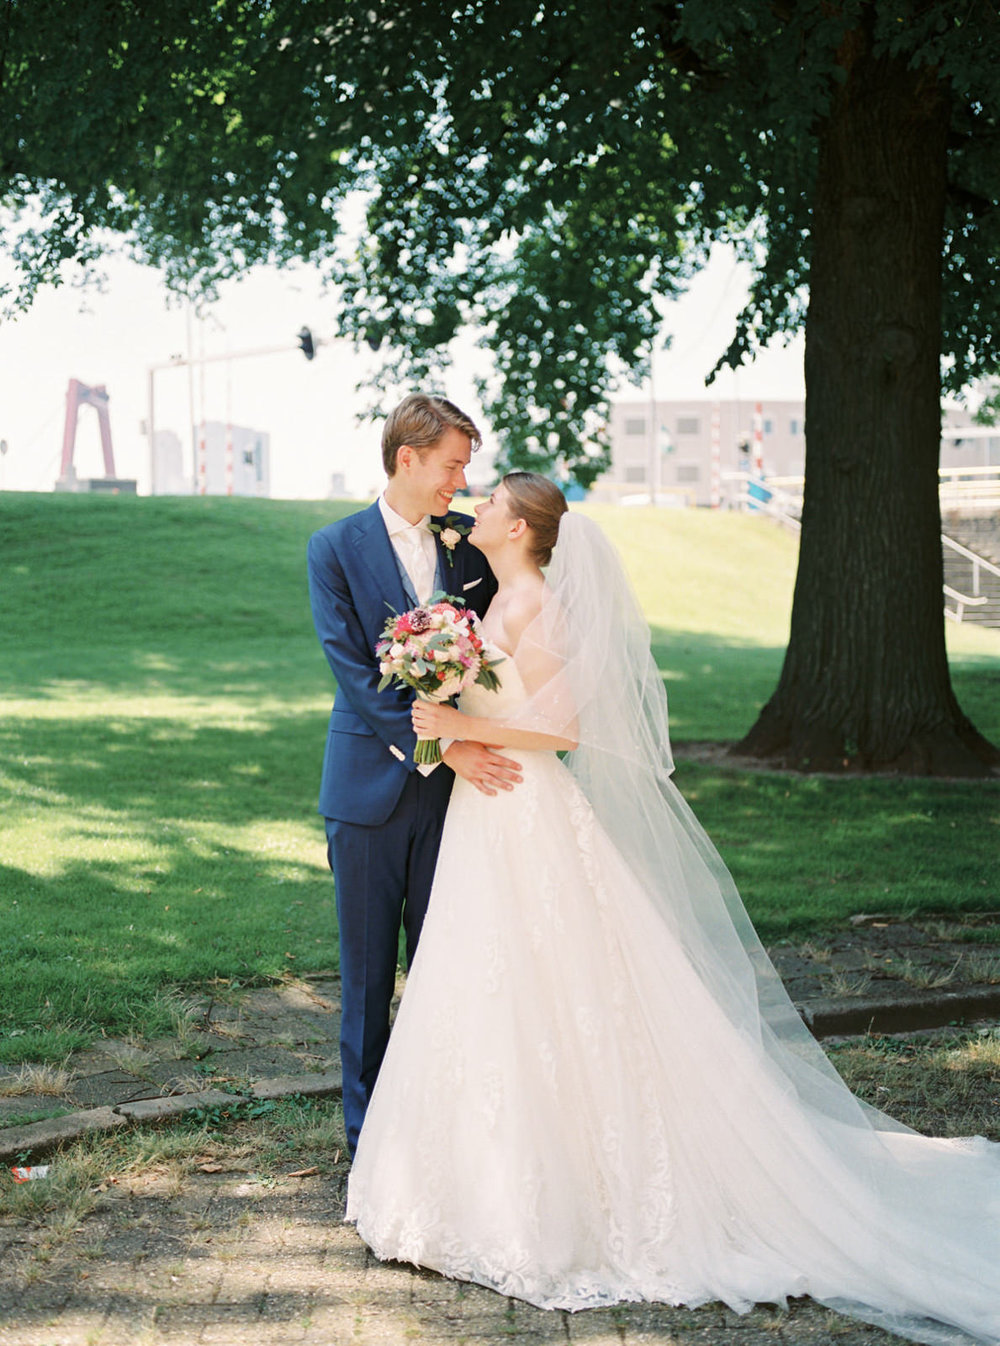 Fine Art Film Wedding Photographer in the Netherlands | CHYMO & MORE